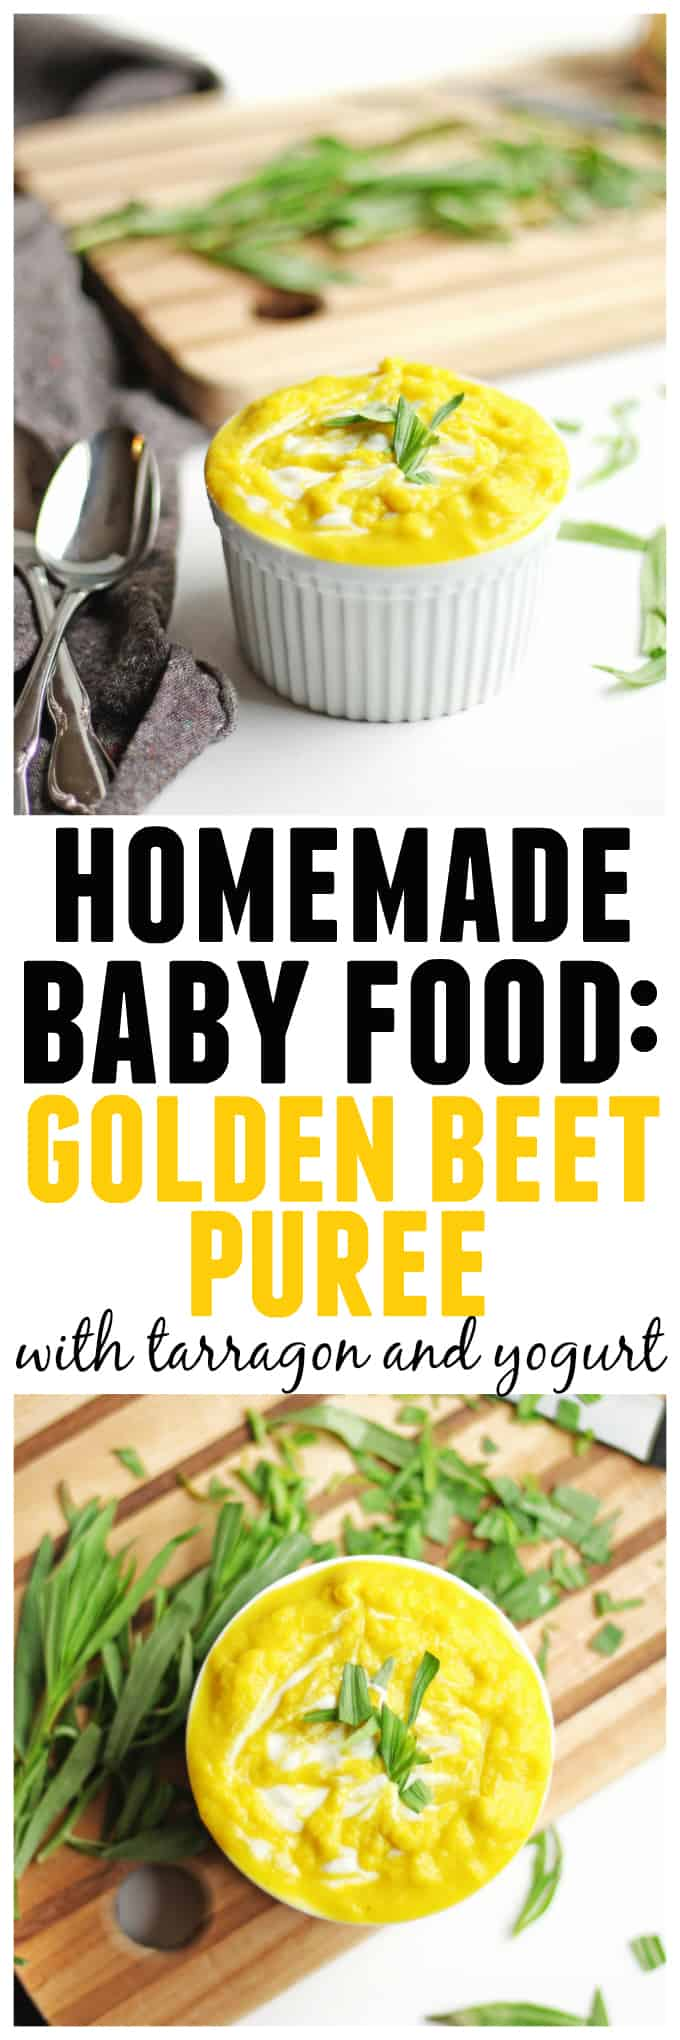 Golden beet puree with tarragon and yogurt! An easy and healthy homemade baby food recipe that is sure to please your little one. YUM! // Rhubarbarians